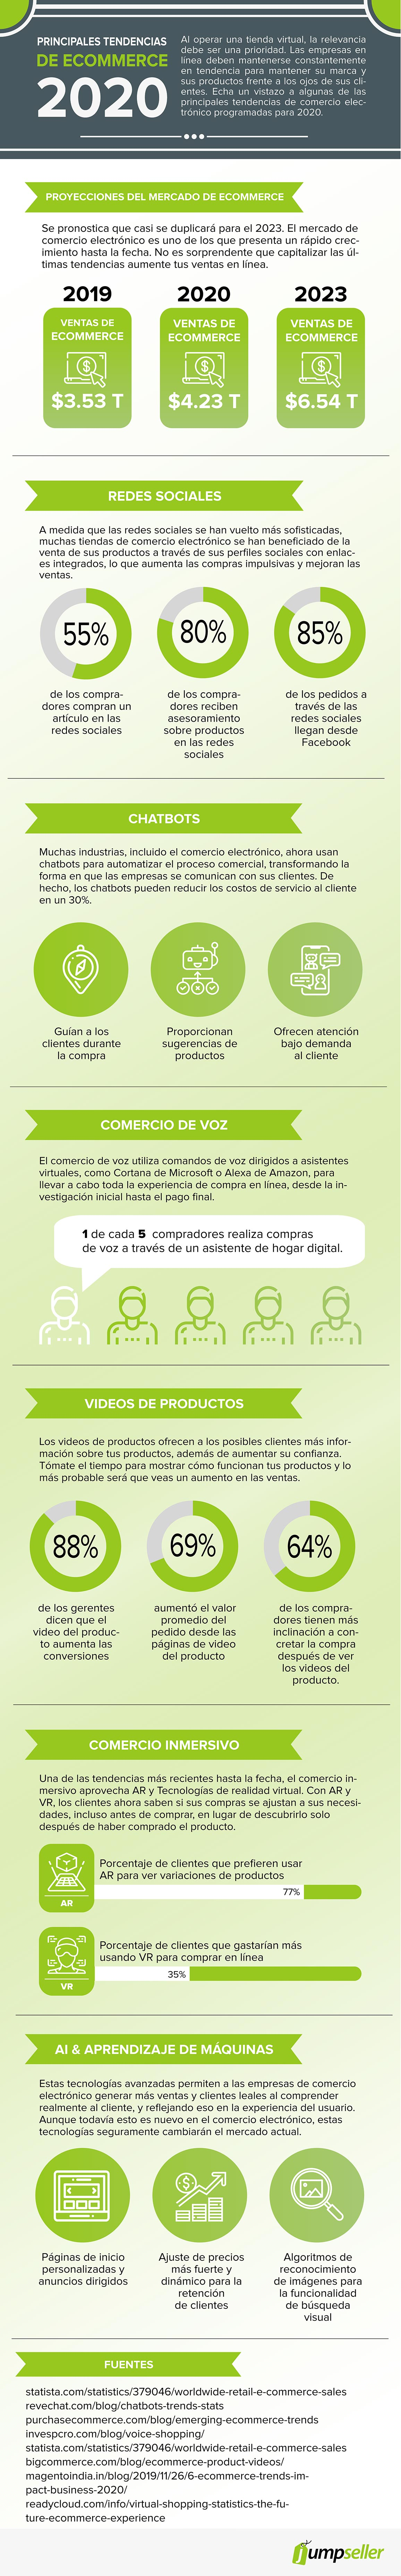 ecommerce-trends2020-PT-01